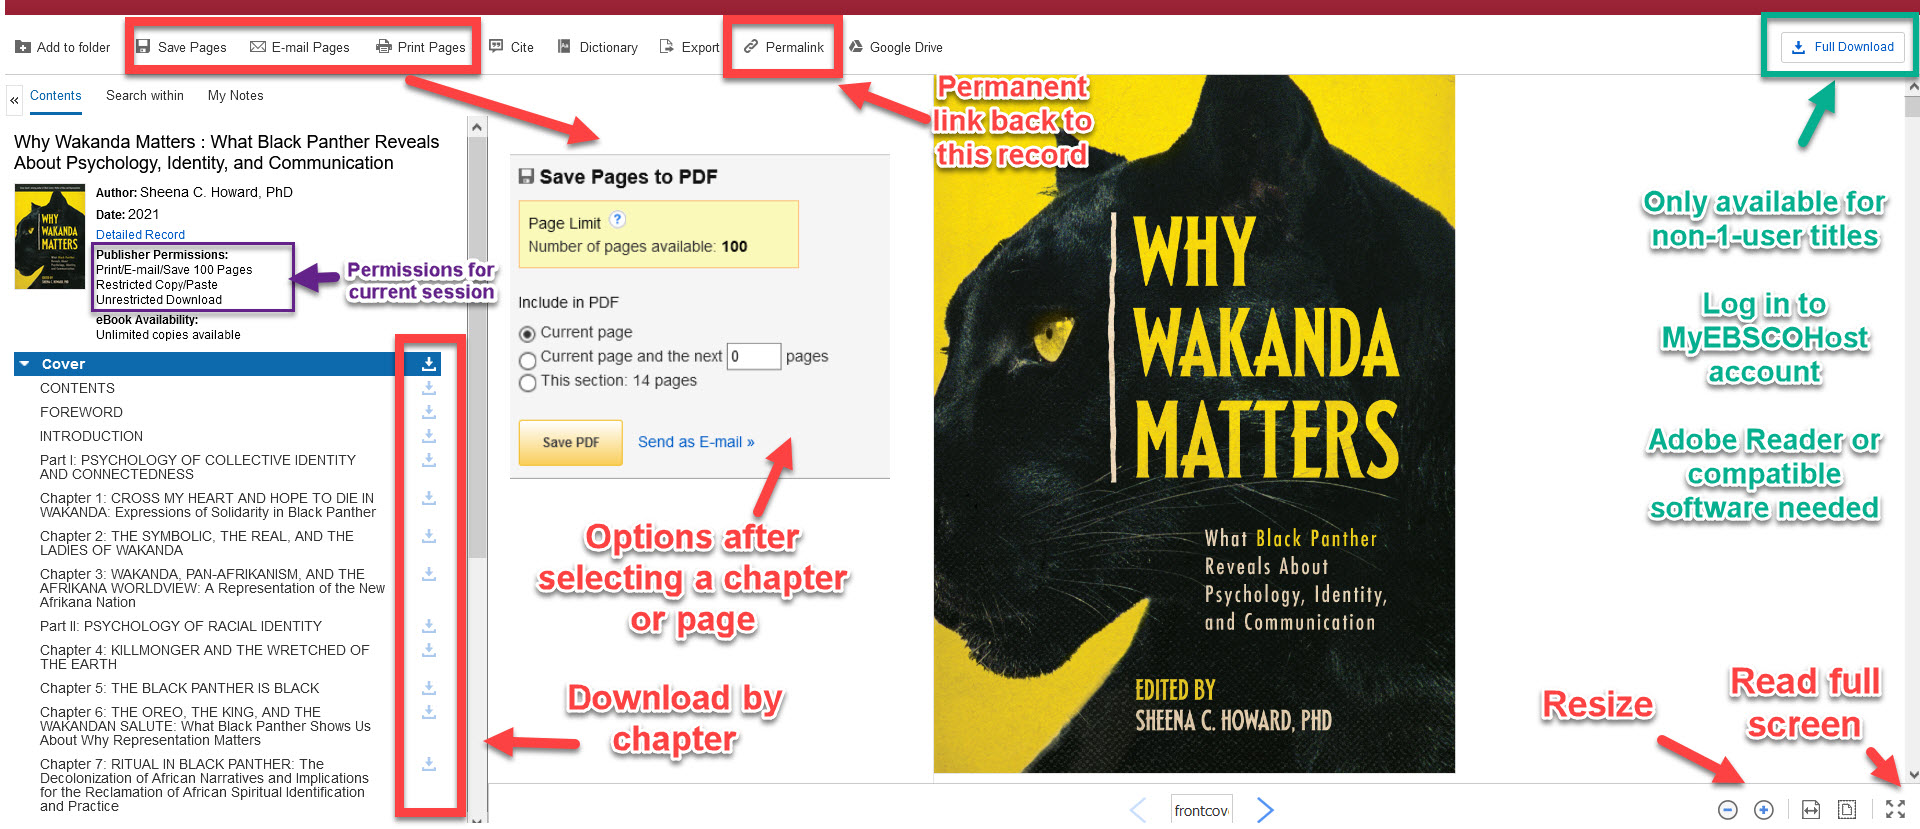 """View of the ebook Why Wakanda Matters: What Black Panther Reveals about Psychology, Identity, and Communication by Sheena C. Howard. A small image of the cover and author, title publisher permissions are in the upper lefthand corner. Underneath these down the left is the table of contents with arrows after each chapter indicating that these can be downloaded separately. These are highlighted in a red box, with an arrow pointing them, whose box says """"Download by Chapter."""" The rest of the screen displays the ebook. The cover of the book is displayed. Along the top menu, Save Pages, Email Pages, and Print pages are boxed in red and point to a pop-up box that gives options for download and saving. A text box with an arrow indicates that these are """"options after selecting a chapter or page."""" The permalink menu option is also boxed in red, with a text explaining that this is a """"permanent link back to this record."""" In the lower right hand side of the screen  the plus and minus buttons have an arrow pointing to them indicating """"Resize,"""" where to the right is an arrow pointing to the icon for Read Full Screen, which is four arrows pointing out from the center of a square. At the very top right, the full download button is boxed in green, with notes indicating that this option is only available for non-1-user titles, that log in to MyEBSCOHost is required, and that Adobe Reader or compatible software is needed."""